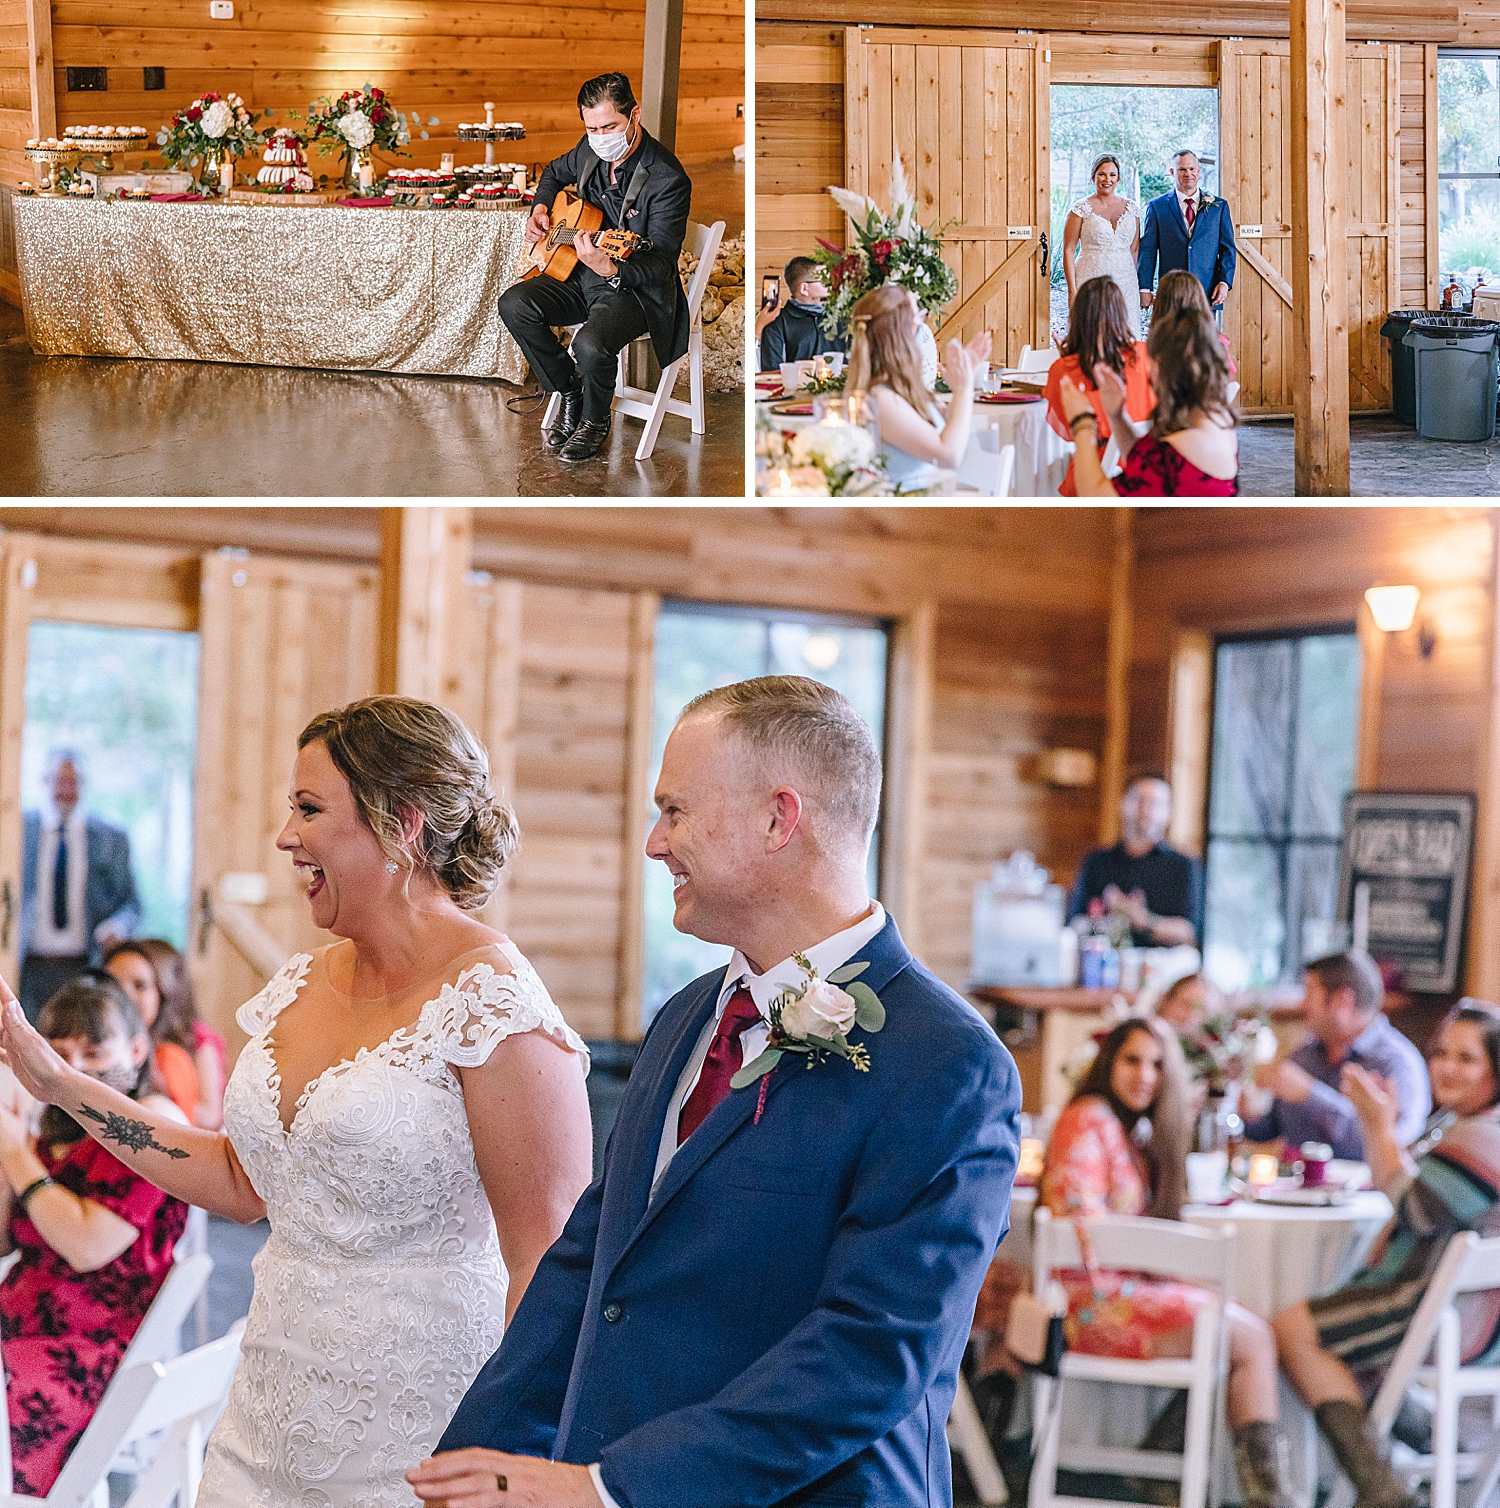 Geronimo-Oaks-Wedding-Venue-Seguin-Texas-Elegant-Navy-Burgundy-Wedding-Carly-Barton-Photography_0061.jpg